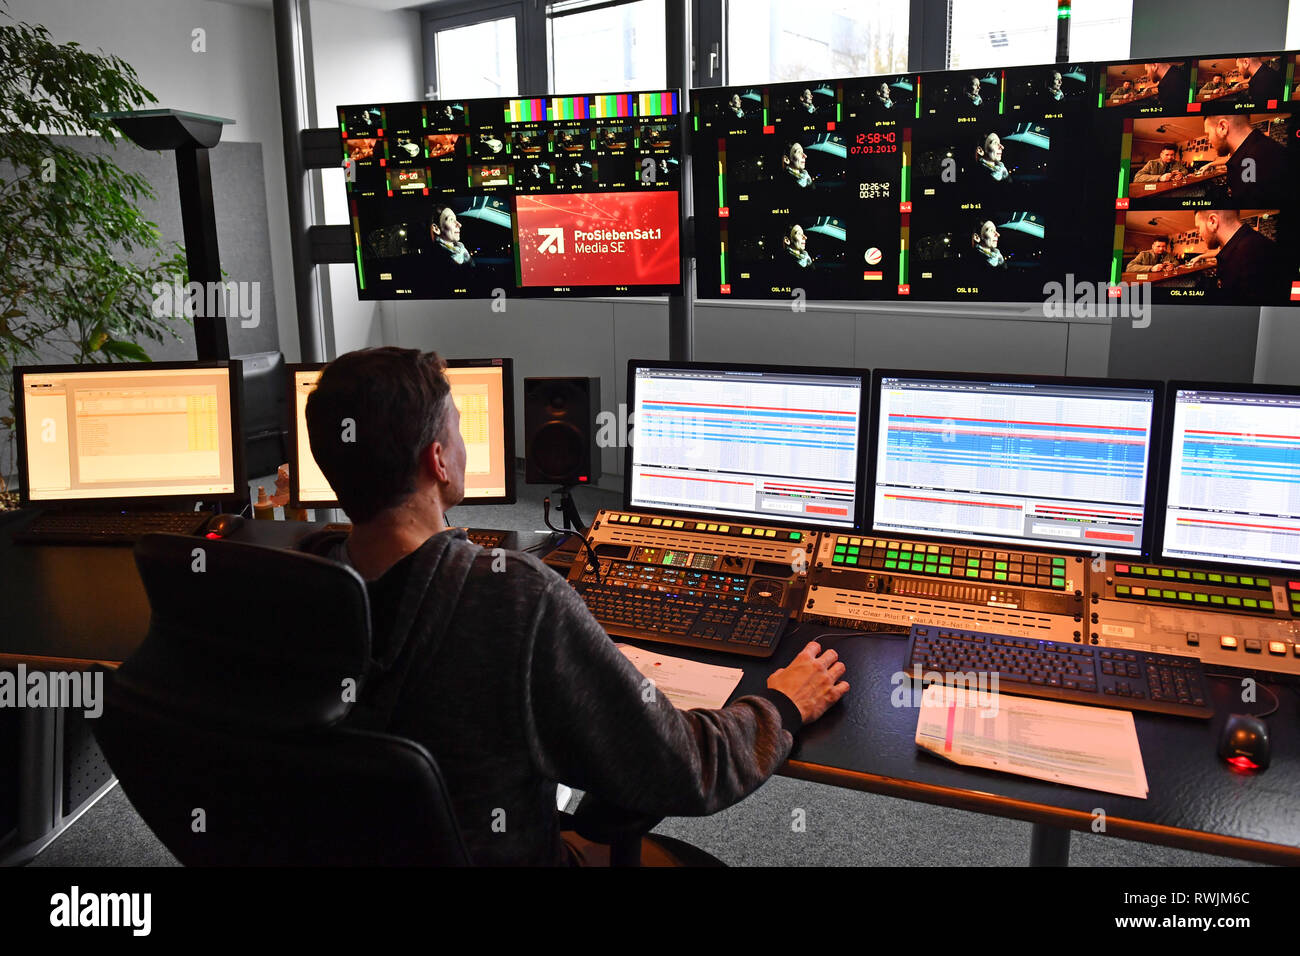 Randmotiv, Feature, The Playout Center (or Playout Center